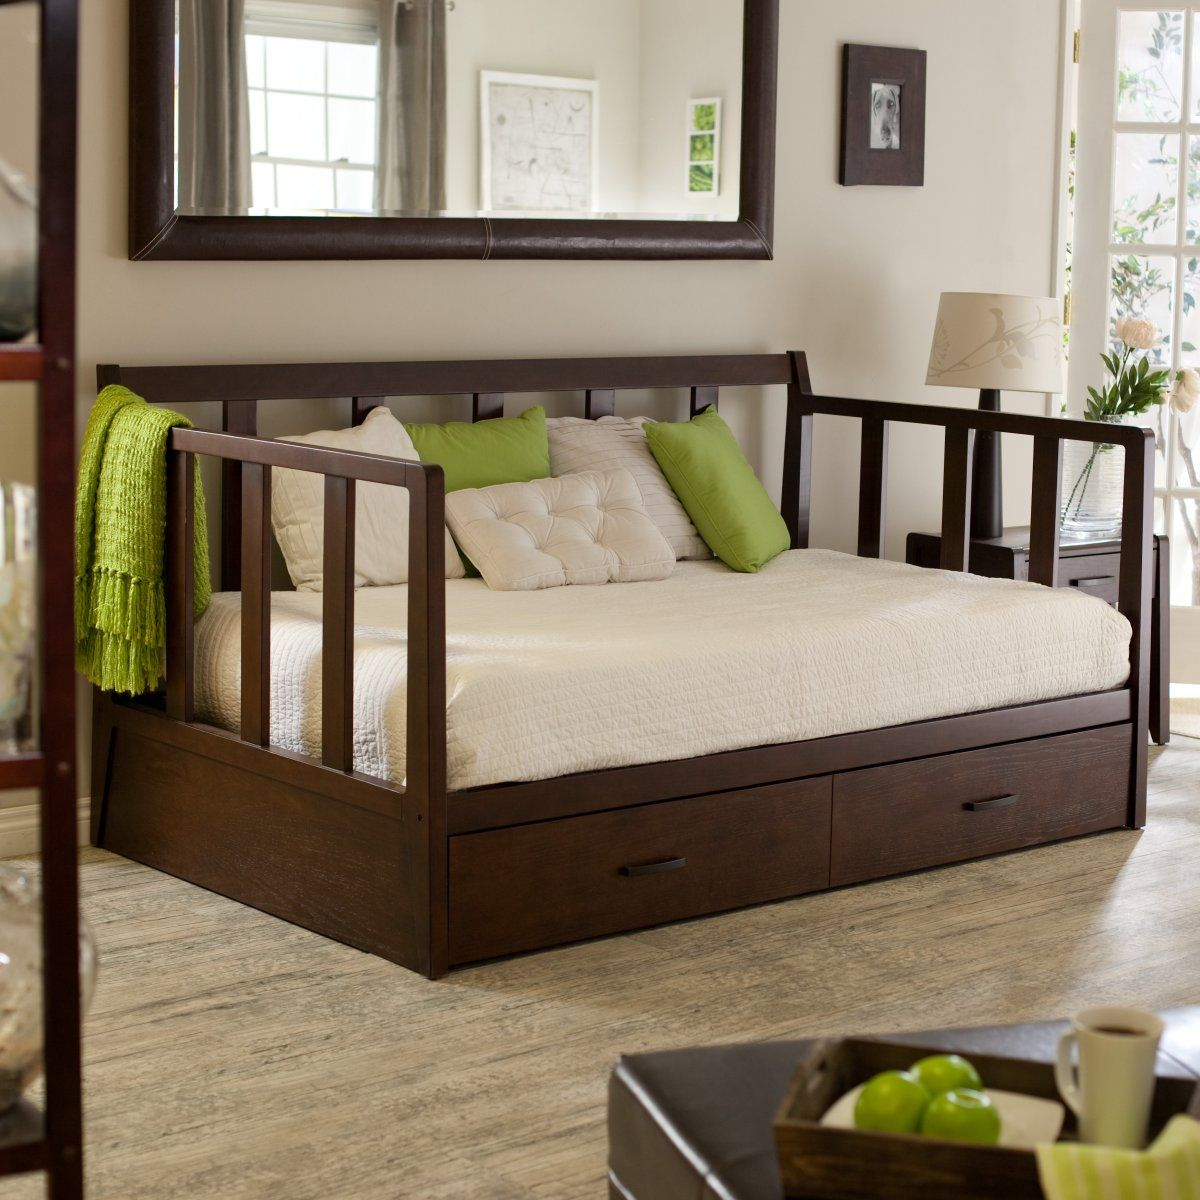 - Recognizing Color And Material Of Daybed With Trundle For Being